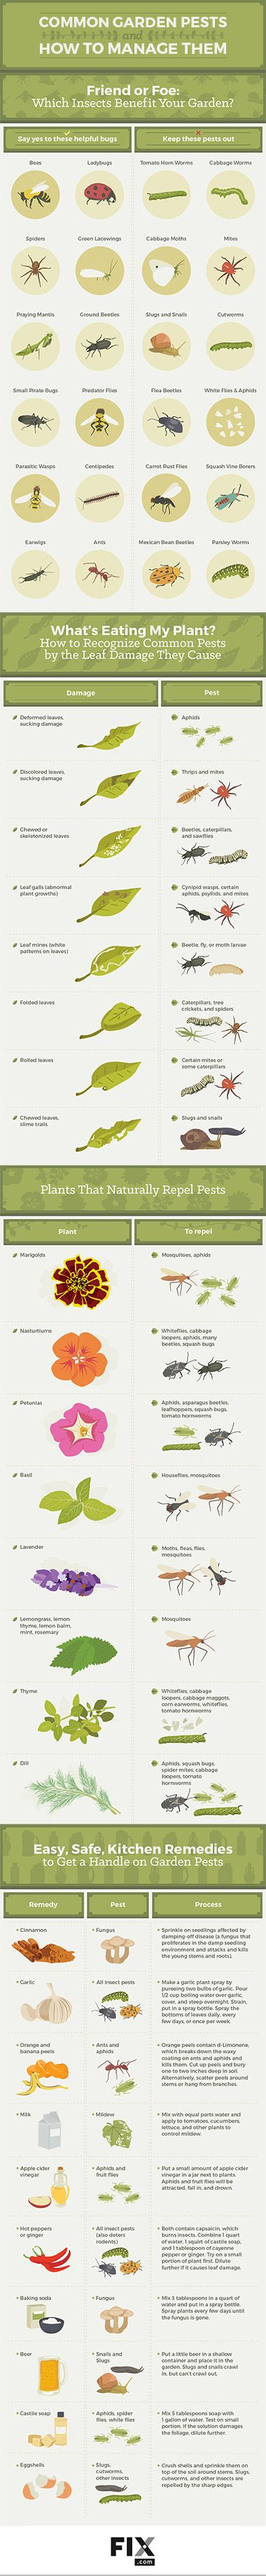 We show you how to protect your garden from annoying pests. There are many…